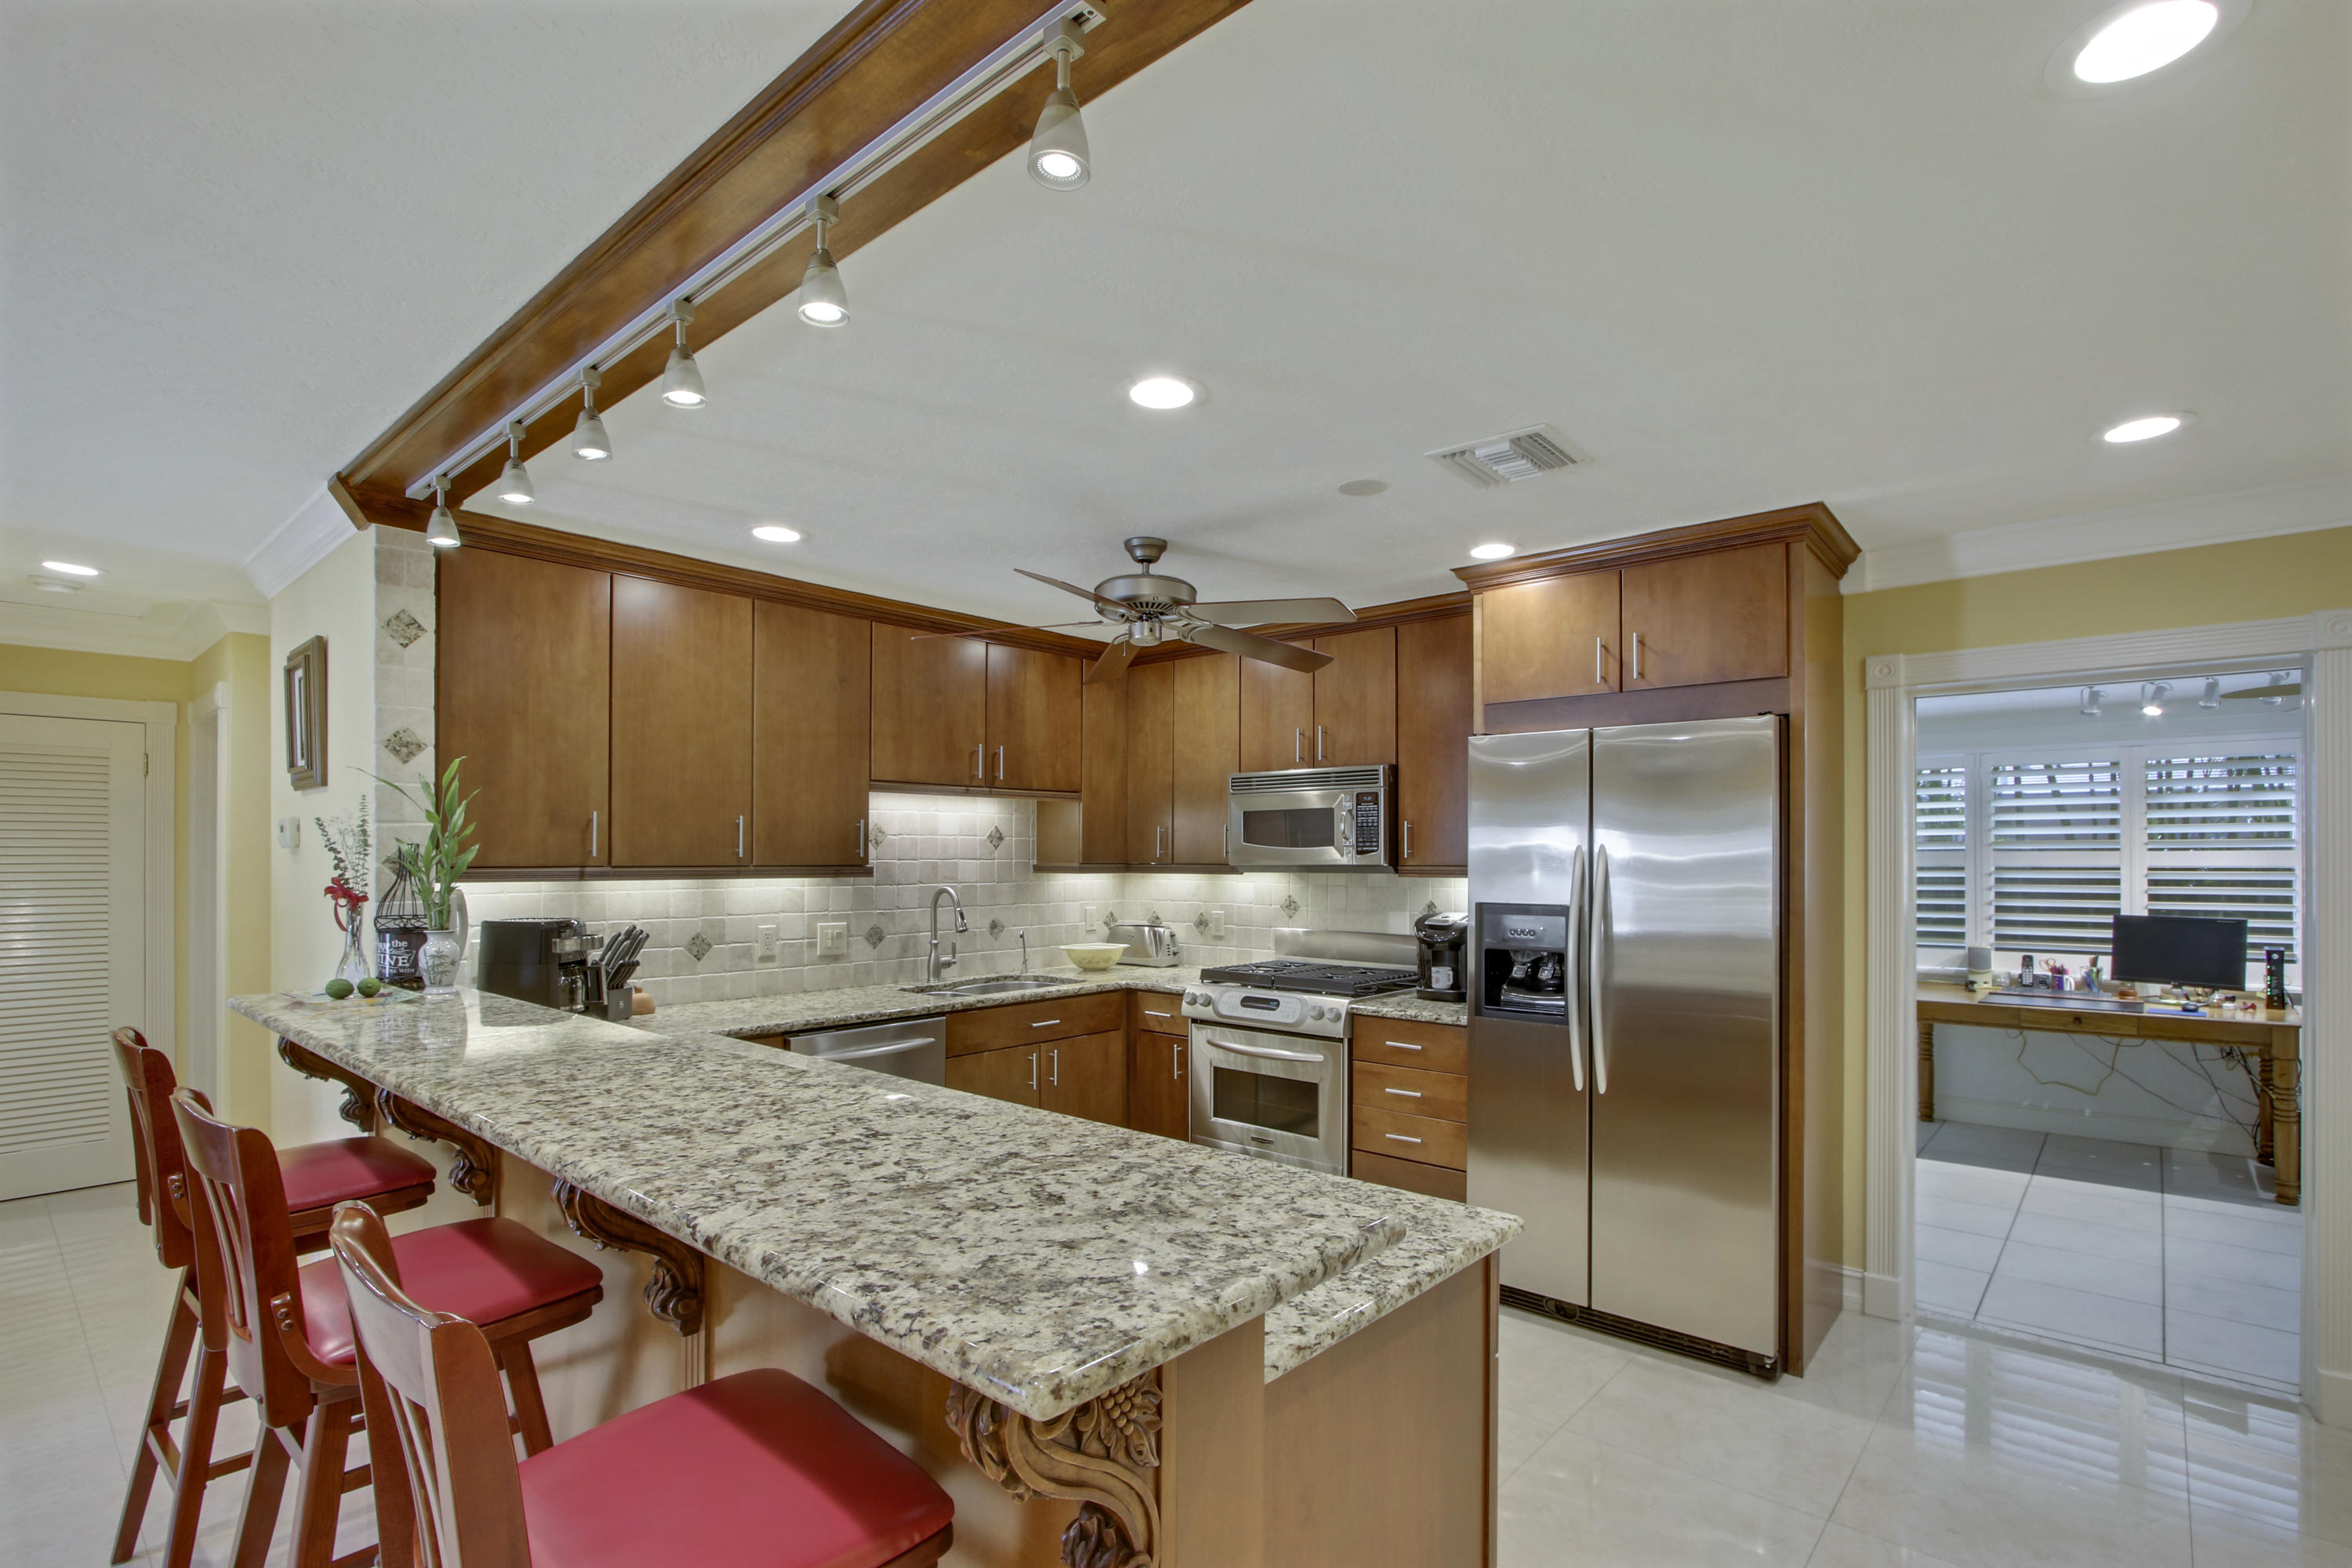 NORTH PALM BEACH REALTY